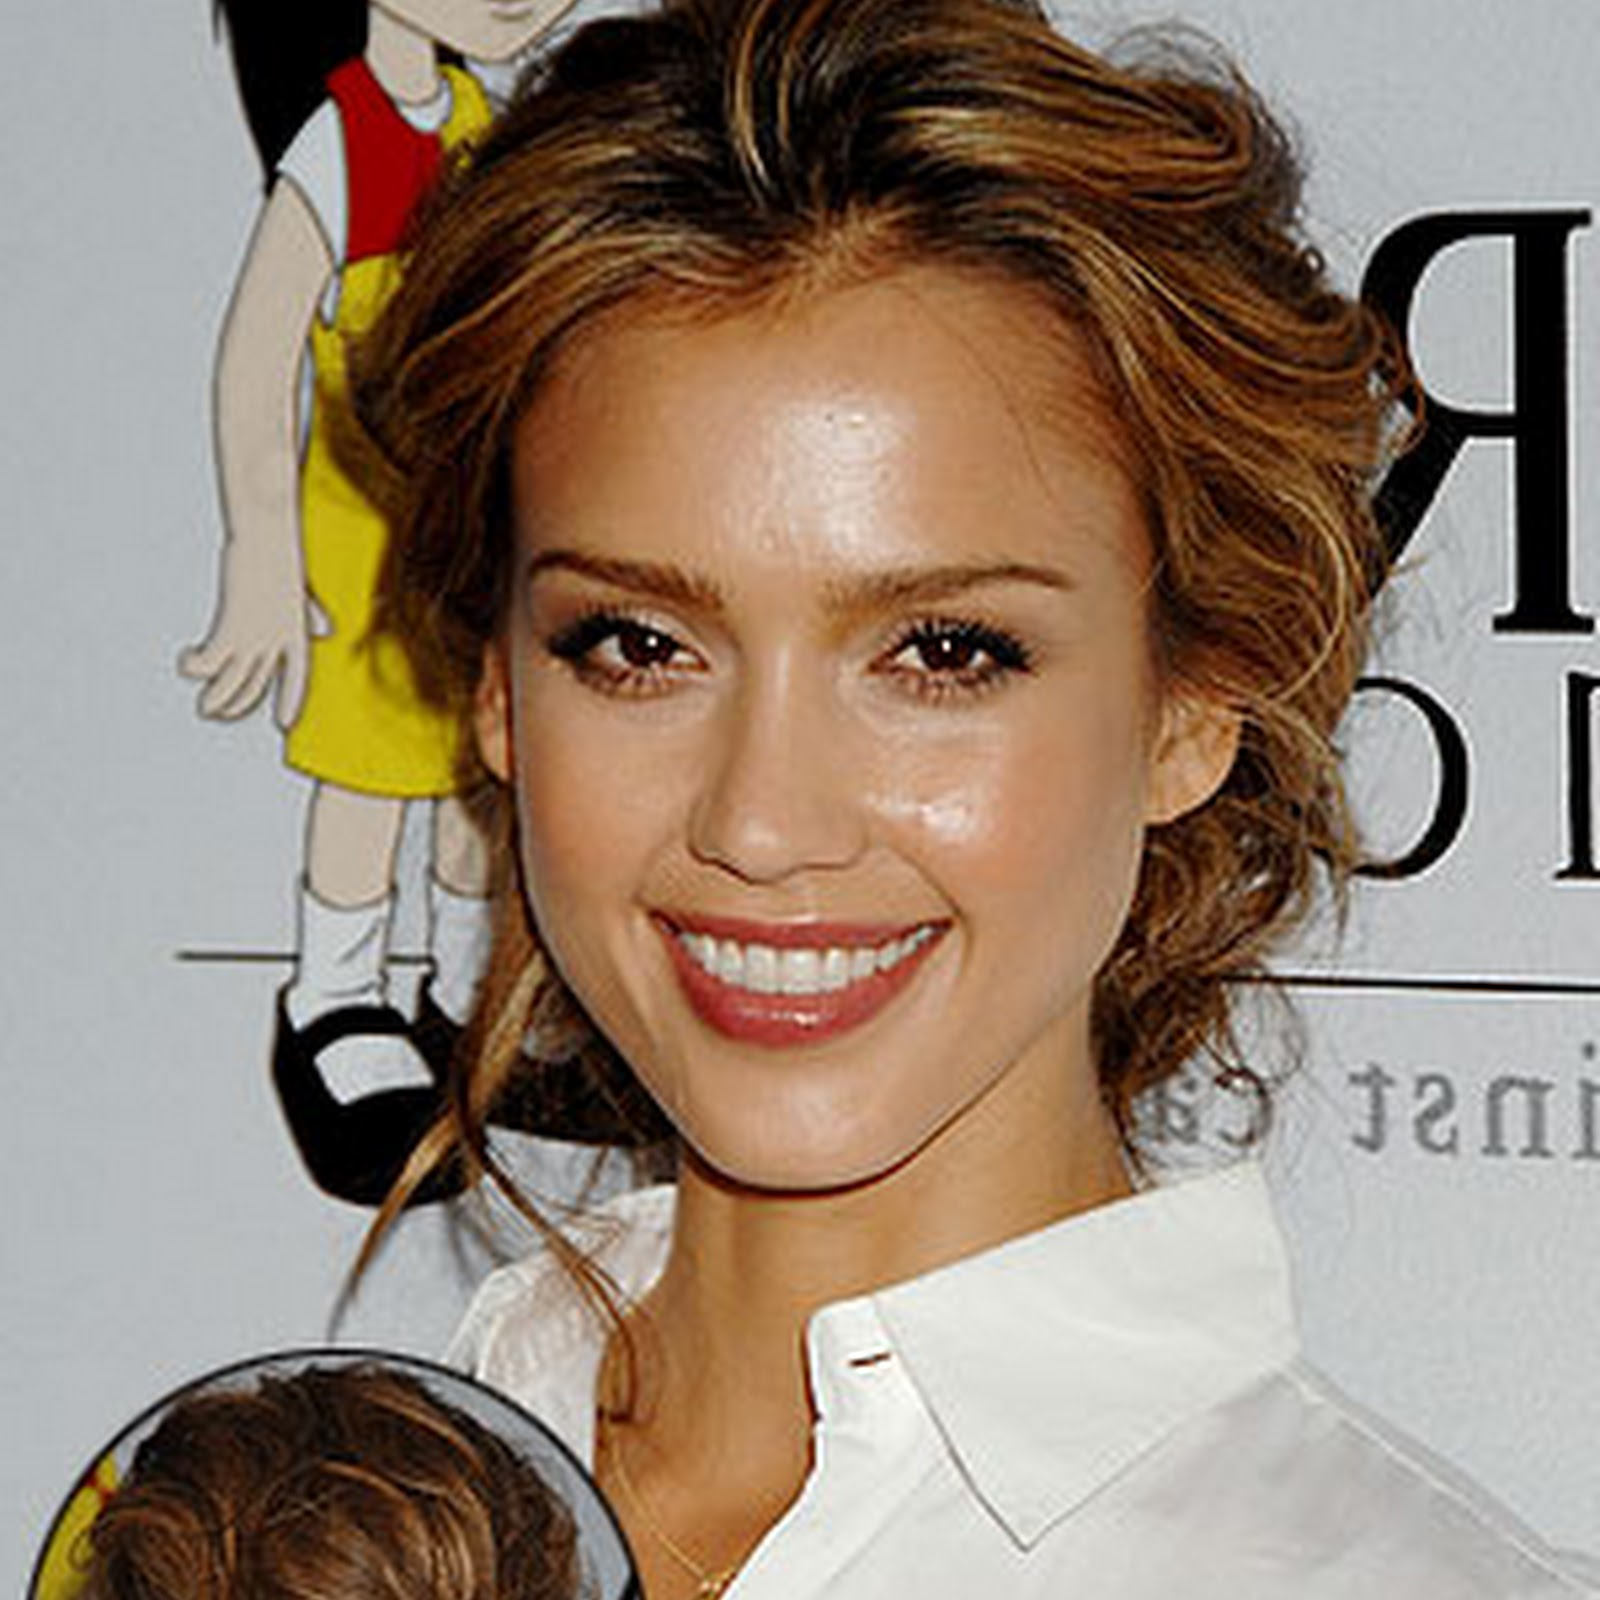 Short Hairstyle For Heart Shaped Face Pertaining To Short Hairstyles For Heart Shaped Faces (View 24 of 25)